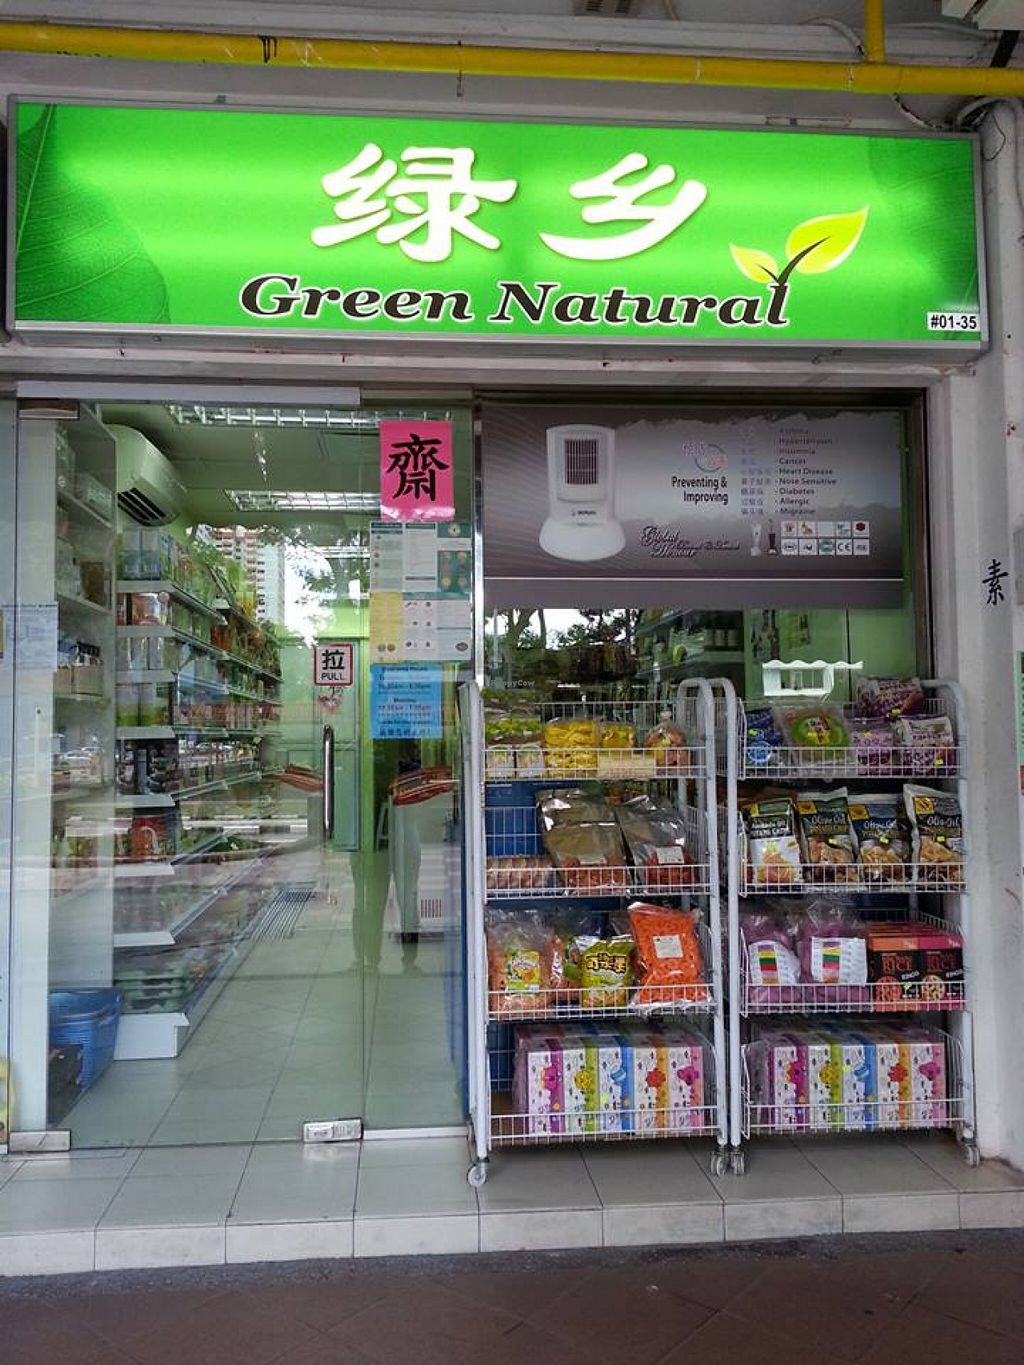 """Photo of Green Natural  by <a href=""""/members/profile/community"""">community</a> <br/>Green Natural <br/> April 19, 2016  - <a href='/contact/abuse/image/65821/145189'>Report</a>"""